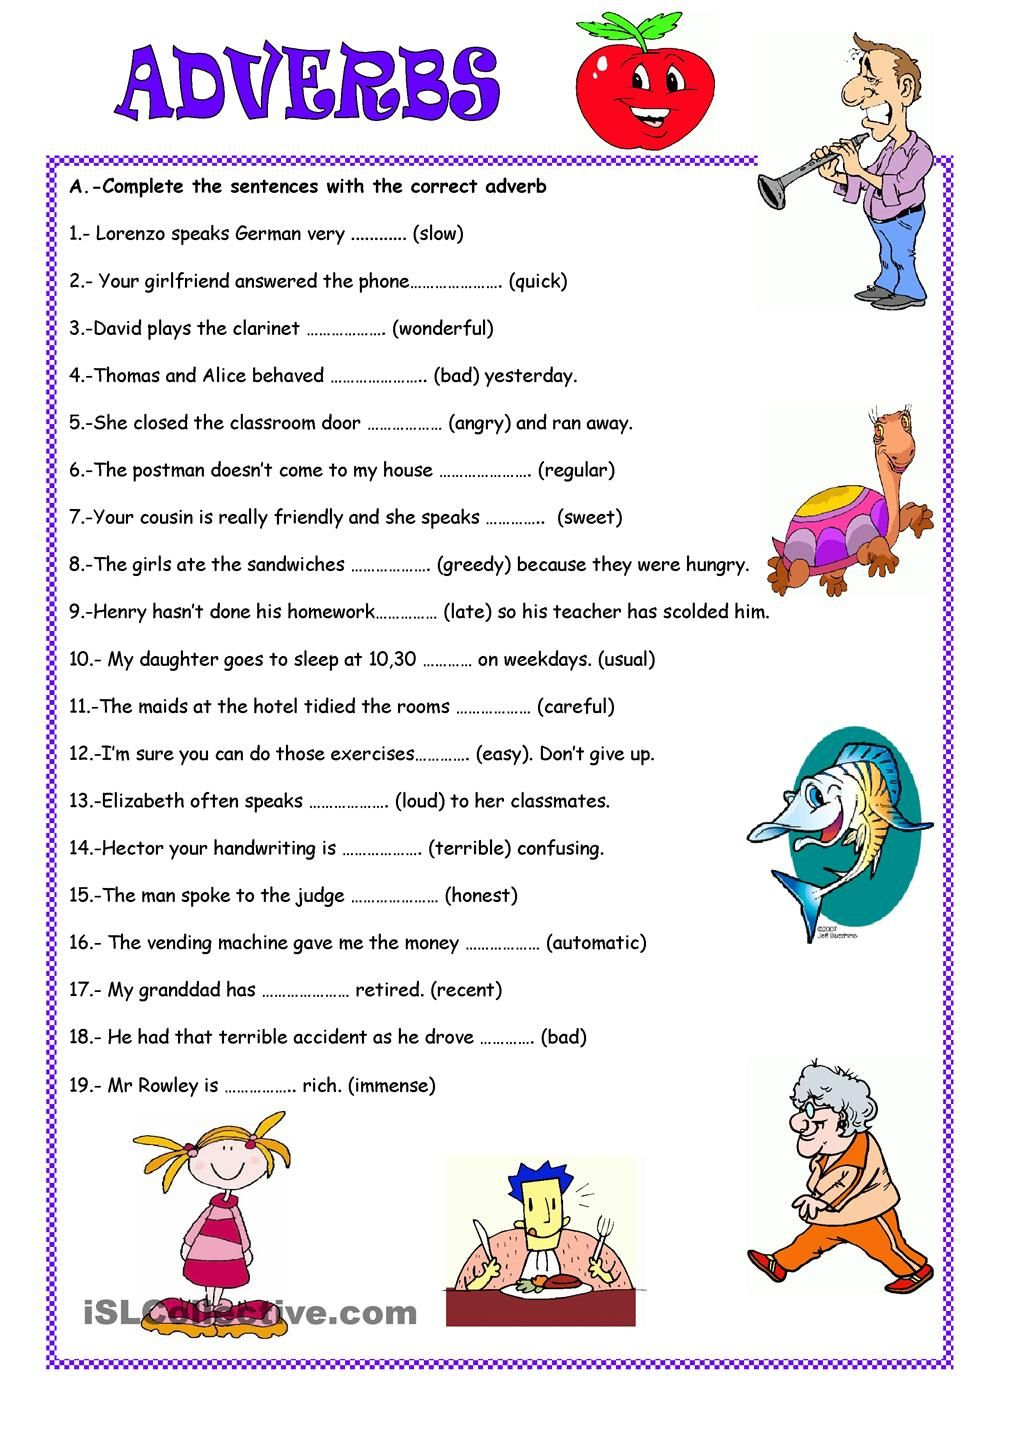 adverbs worksheet - Google Search  Adverbs  Pinterest  Student  alphabet worksheets, learning, worksheets for teachers, education, and grade worksheets Worksheets Adverbs 1440 x 1018